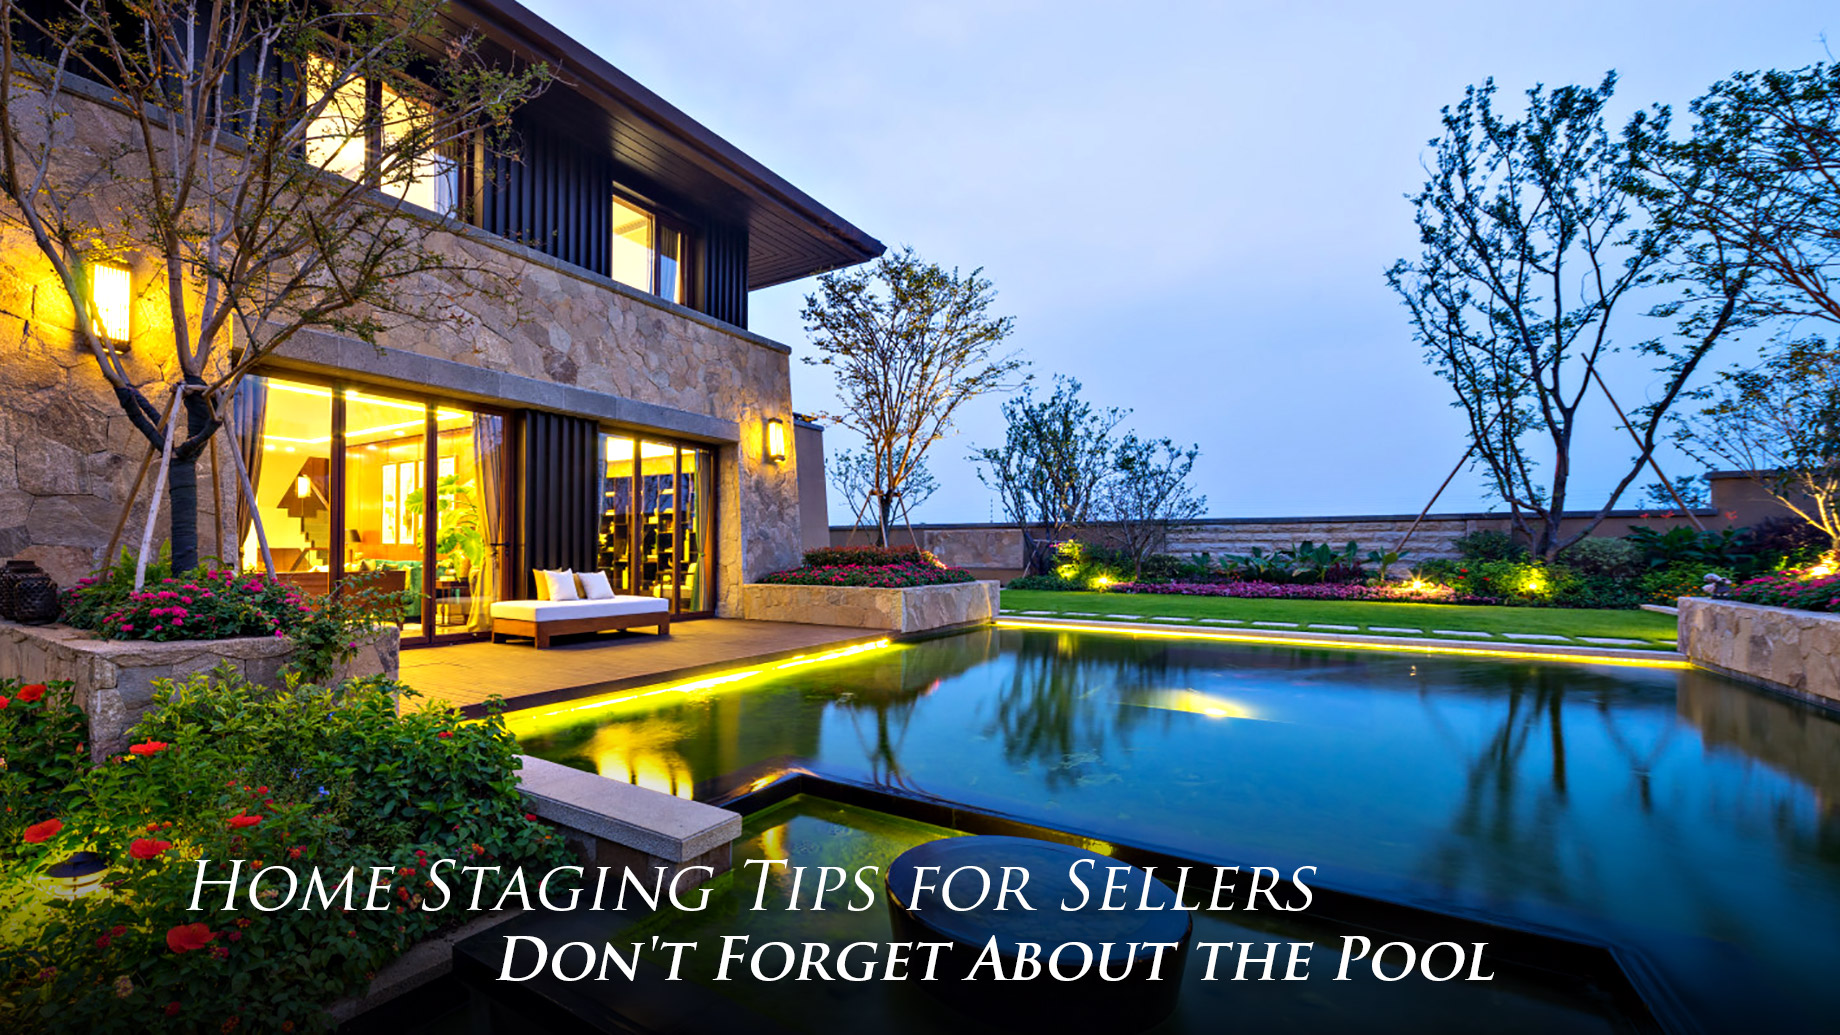 Home Staging Tips for Sellers - Don't Forget About the Pool